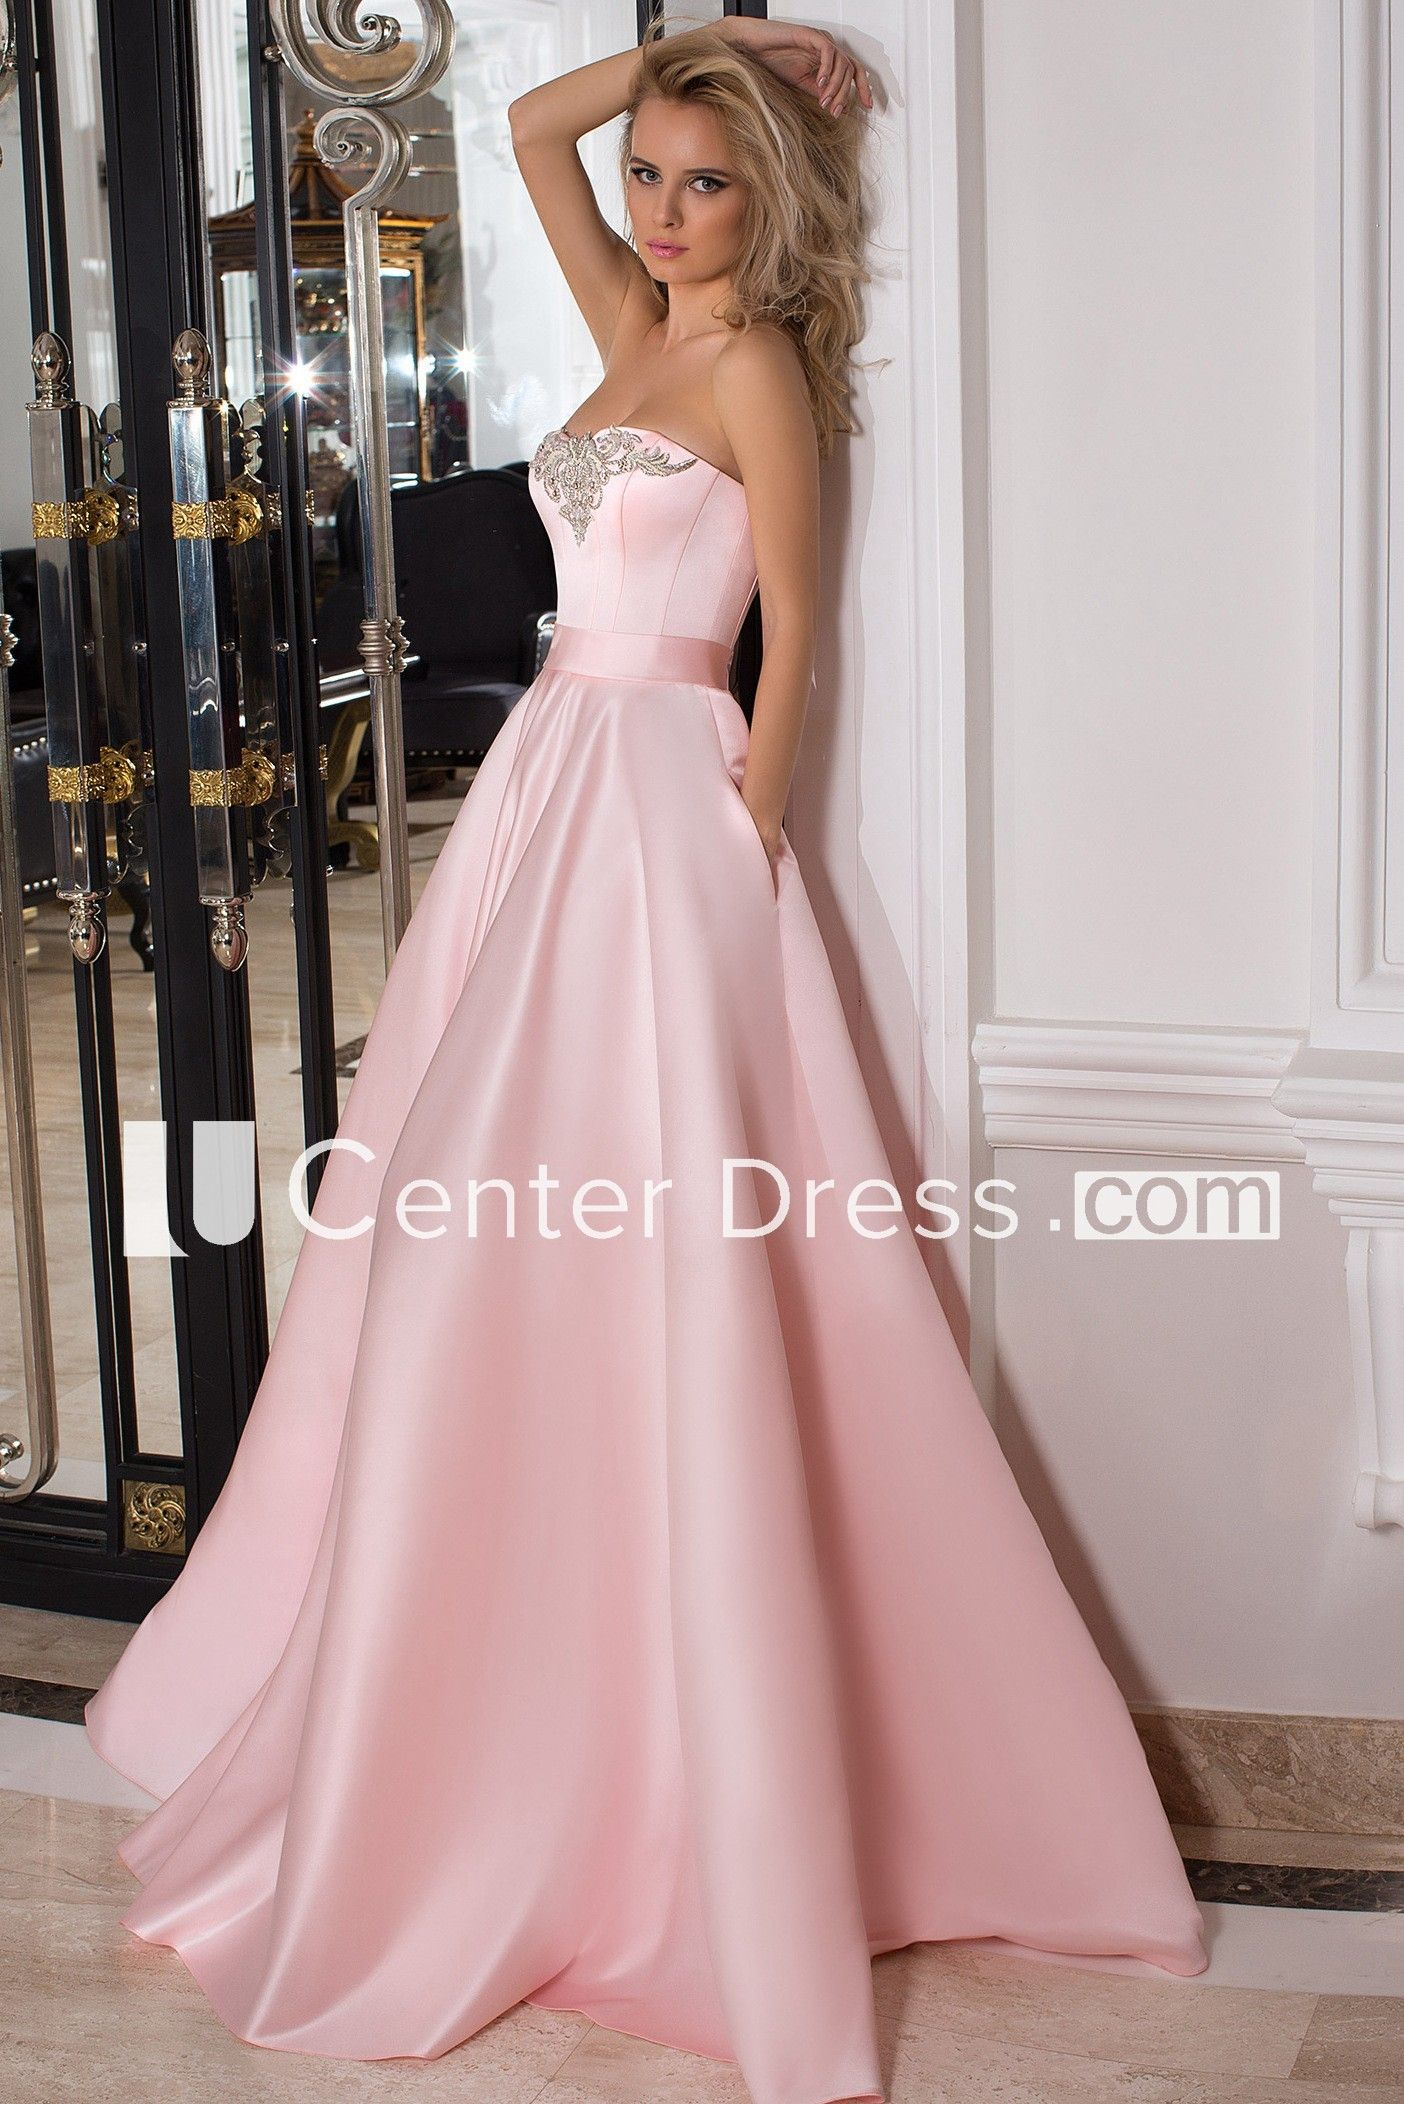 Strapless Maxi Beaded Satin Prom Dress With Ribbon | Vestidos de ...